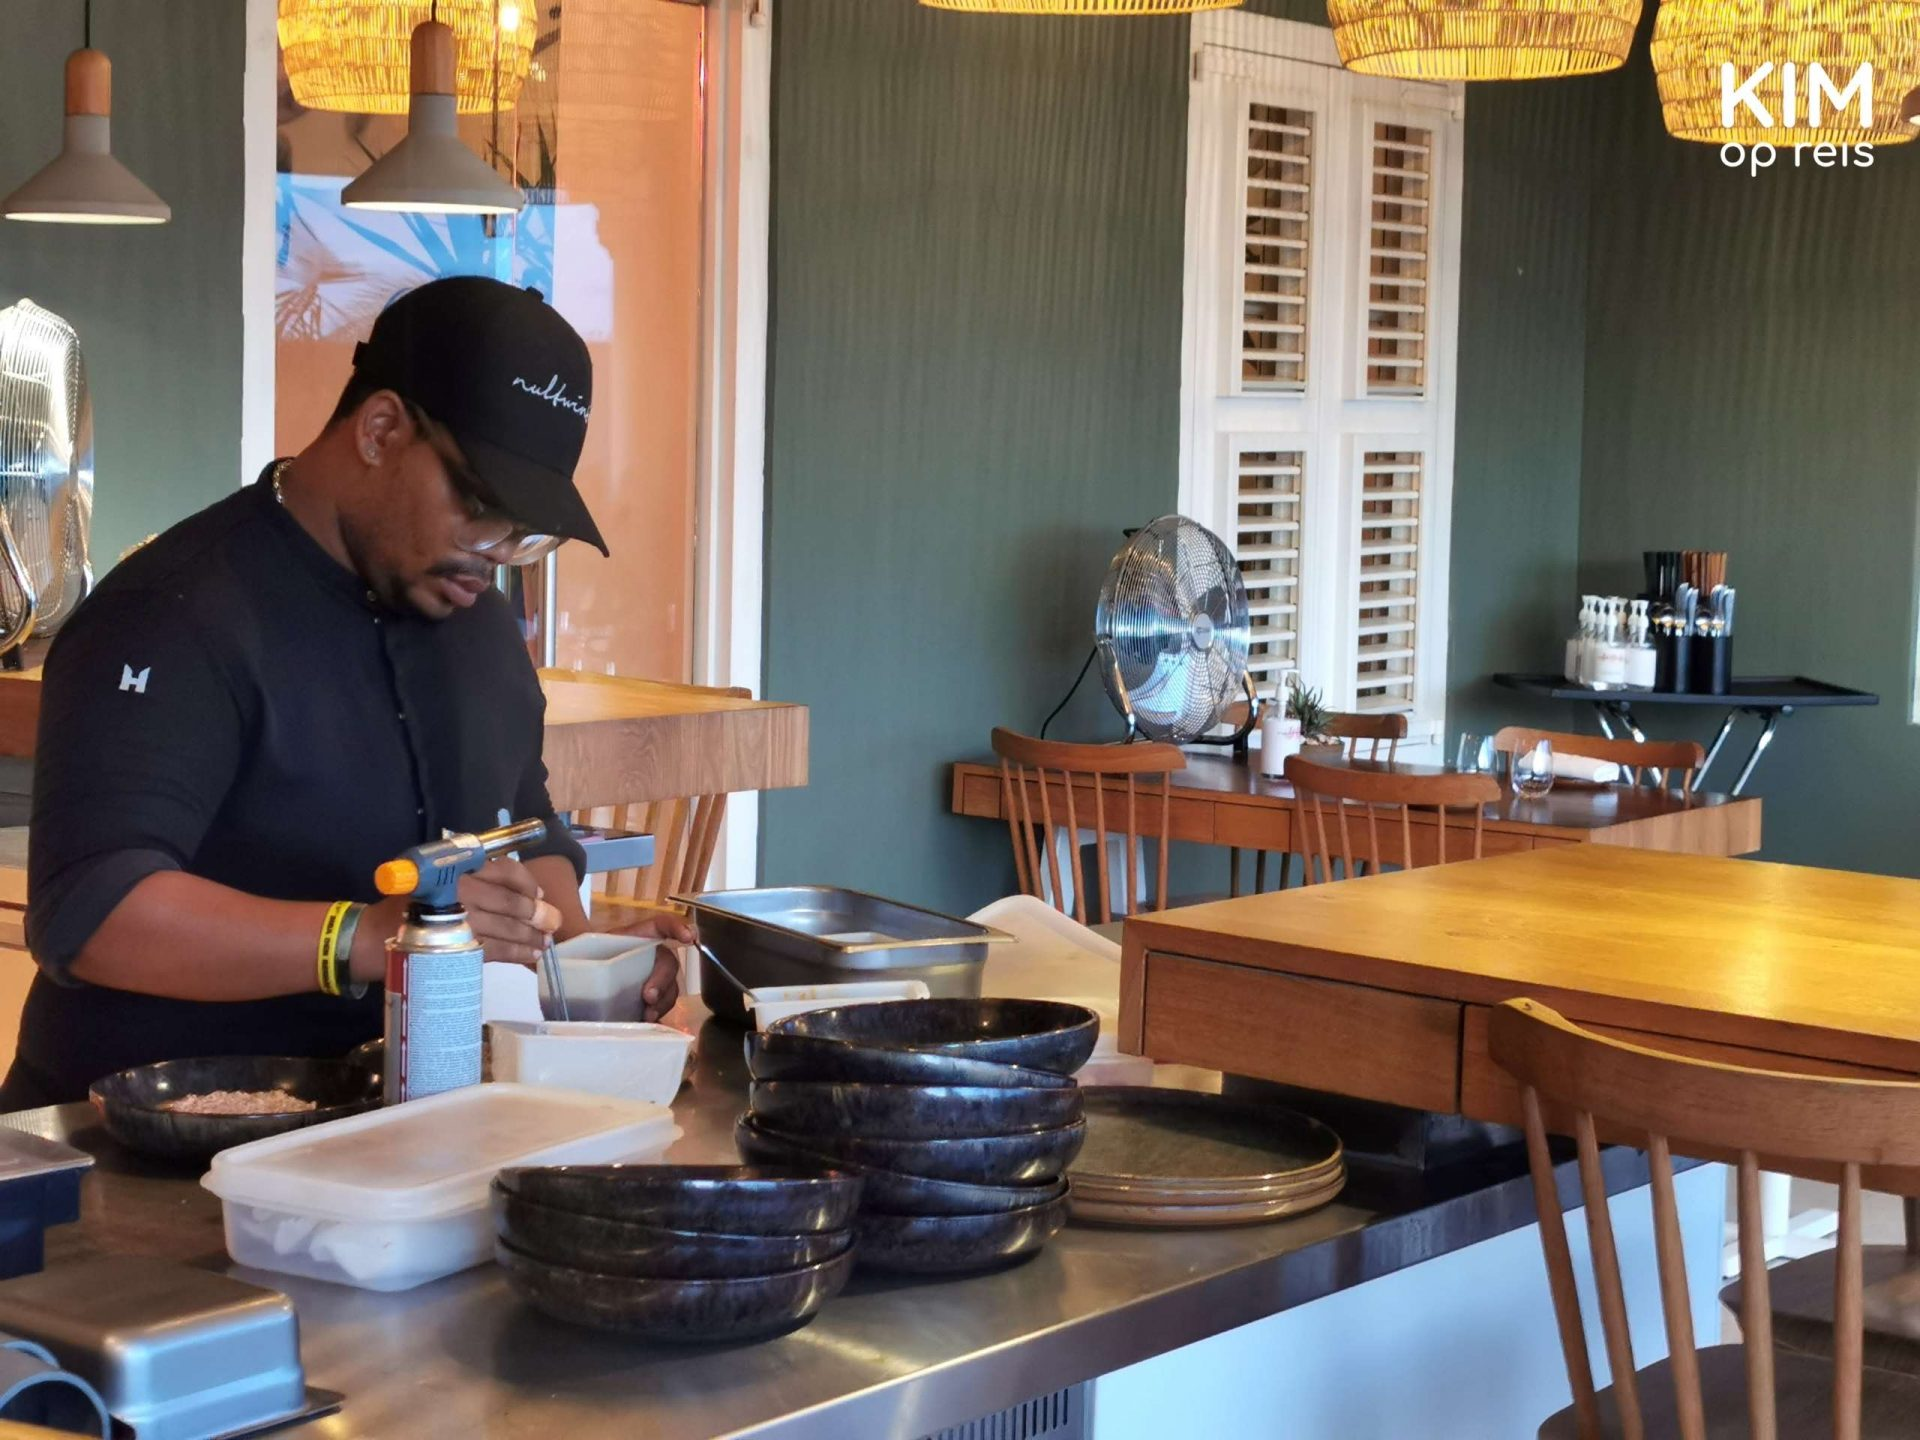 Restaurant Nultwintig Kitchen Curaçao: the cook is working at a workbench